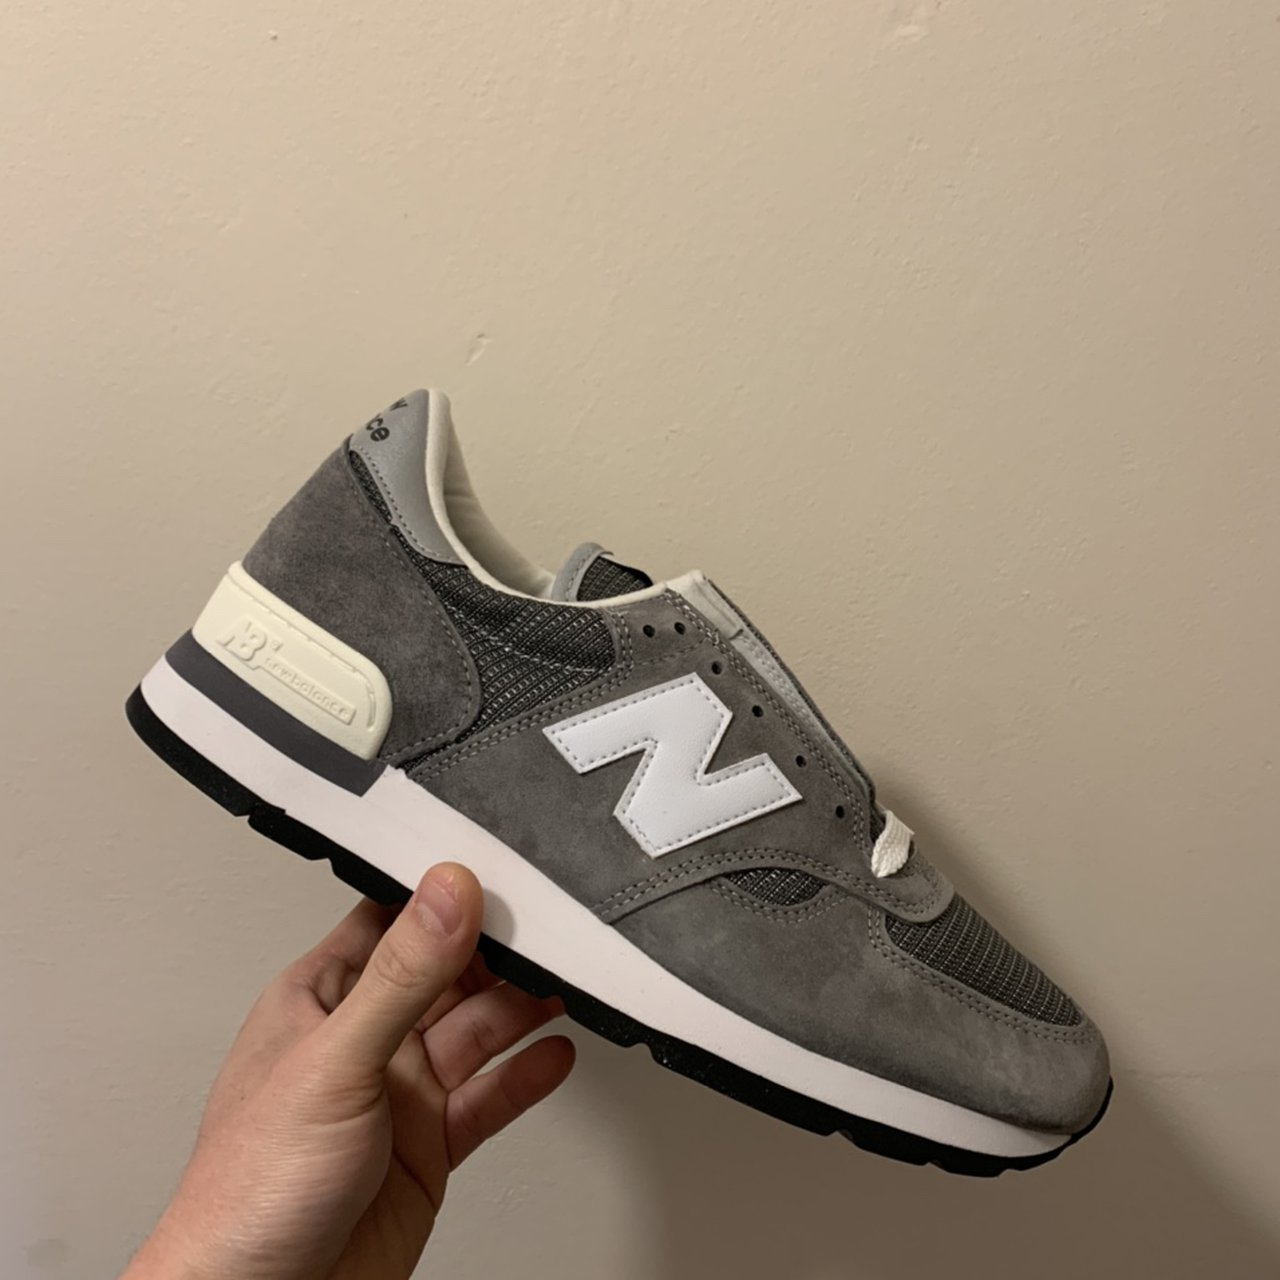 New balance 990v1 GRY Made in USA New